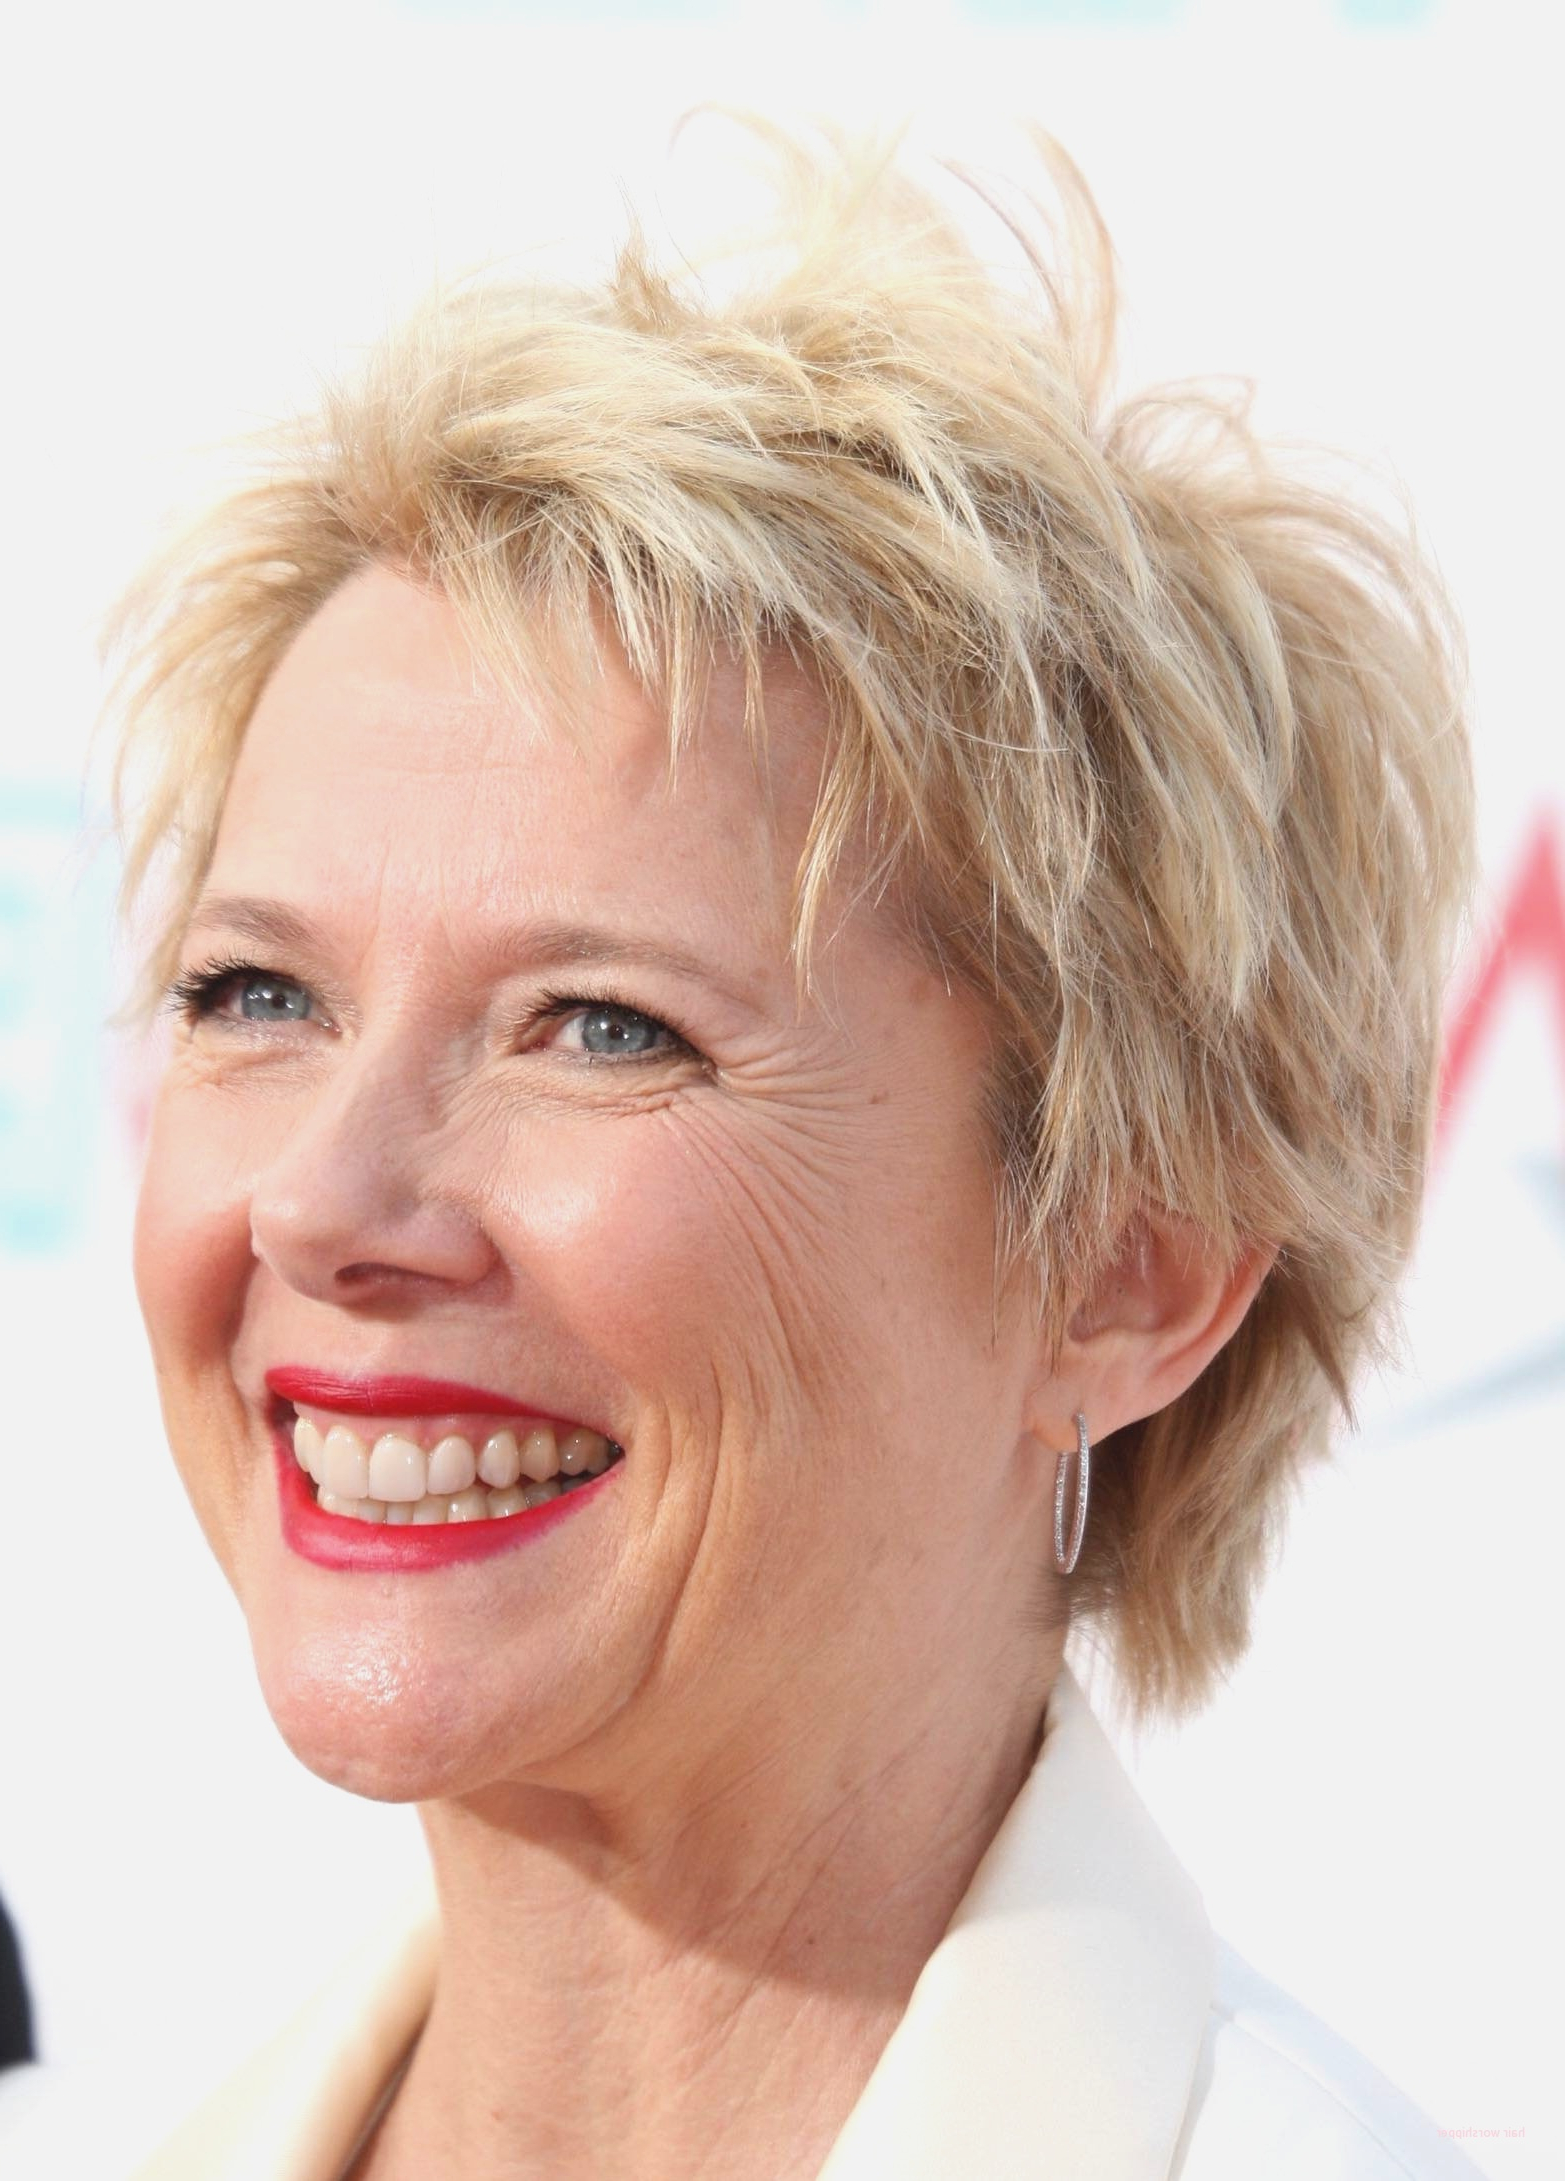 Women's Hairstyles For 60 Year Olds Elegant Stylish Short Hairstyles For Short Hairstyles For 60 Year Olds (View 20 of 25)